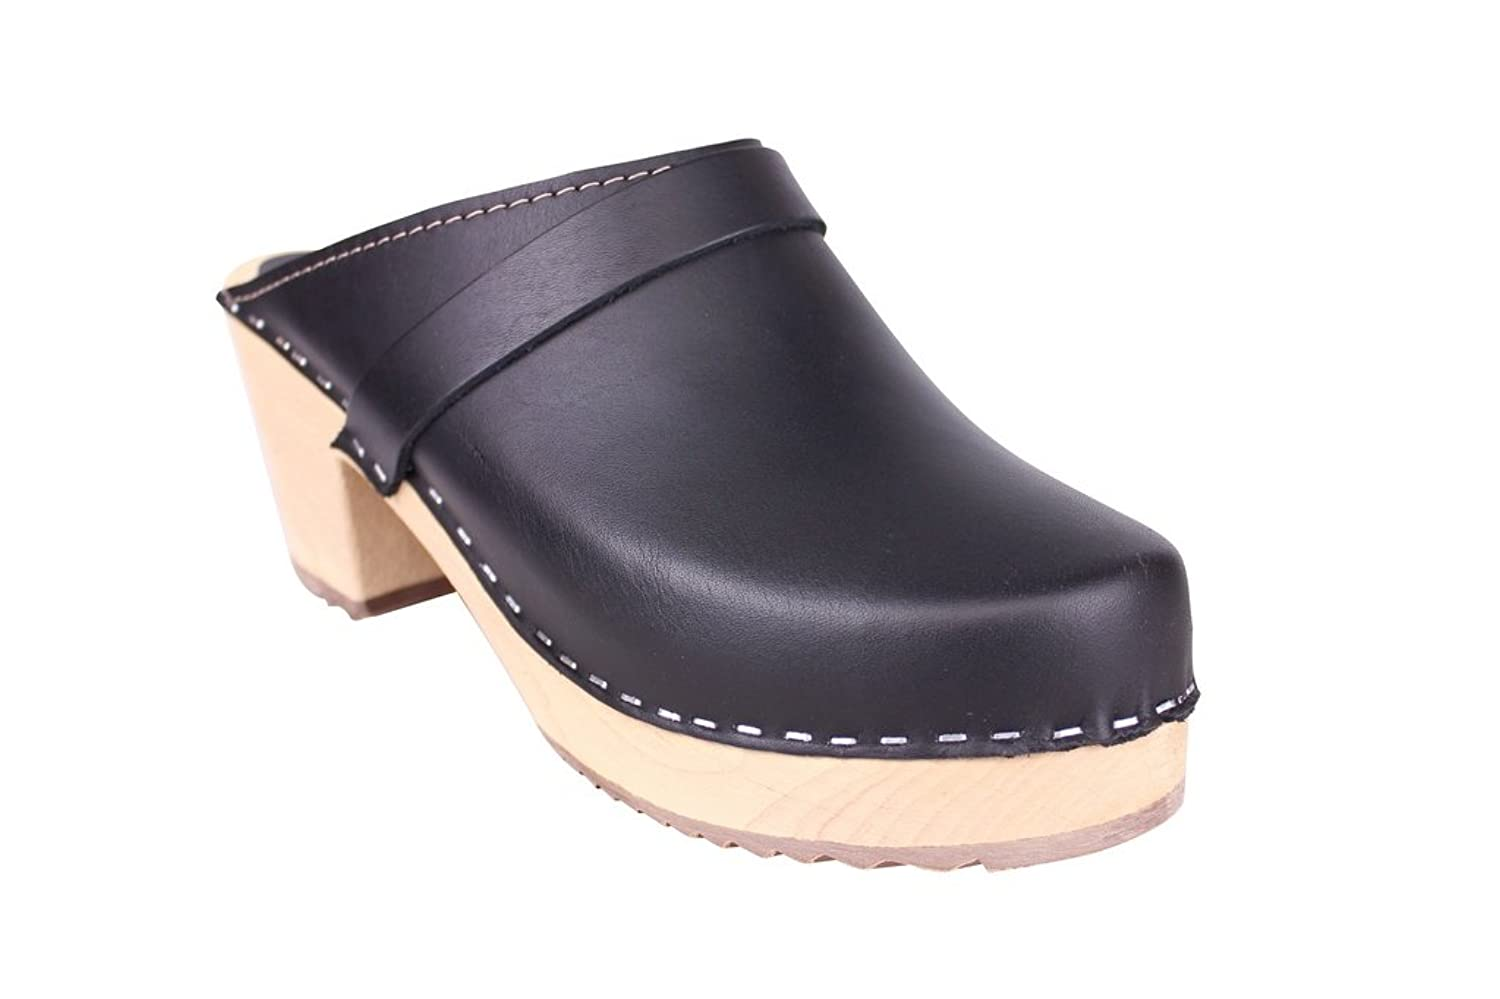 Lotta From Stockholm Swedish Clogs : High Heeled Clog in Black Leather